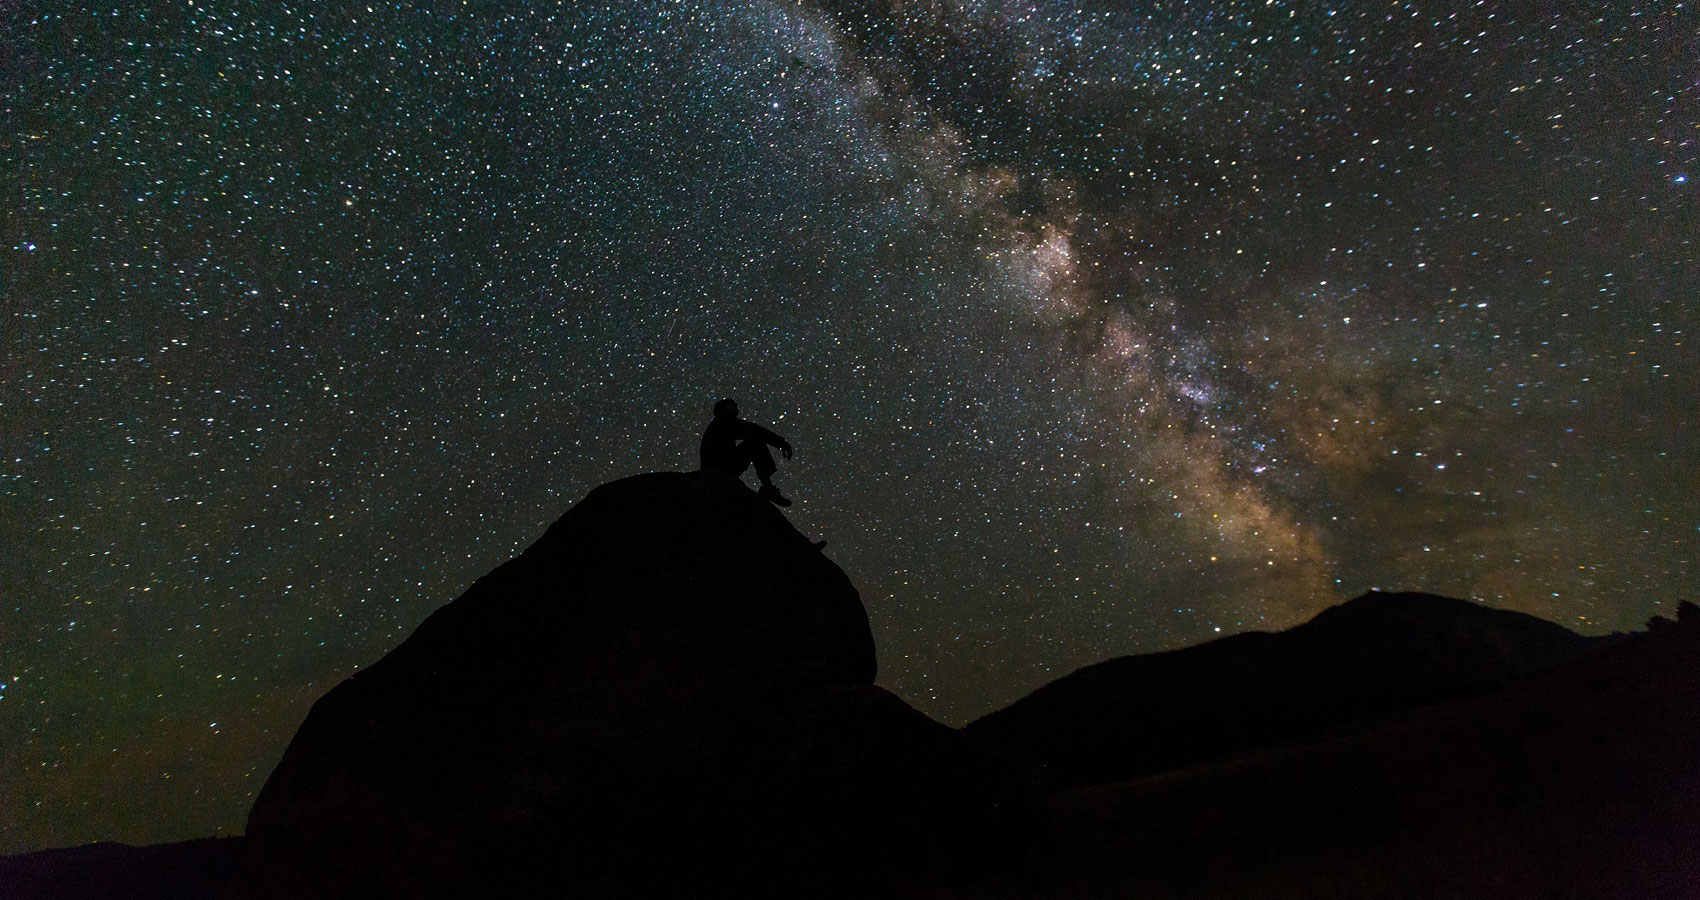 Home Sweet Home Beyond Milky Way by Hongri Yuan at Spillwords.com